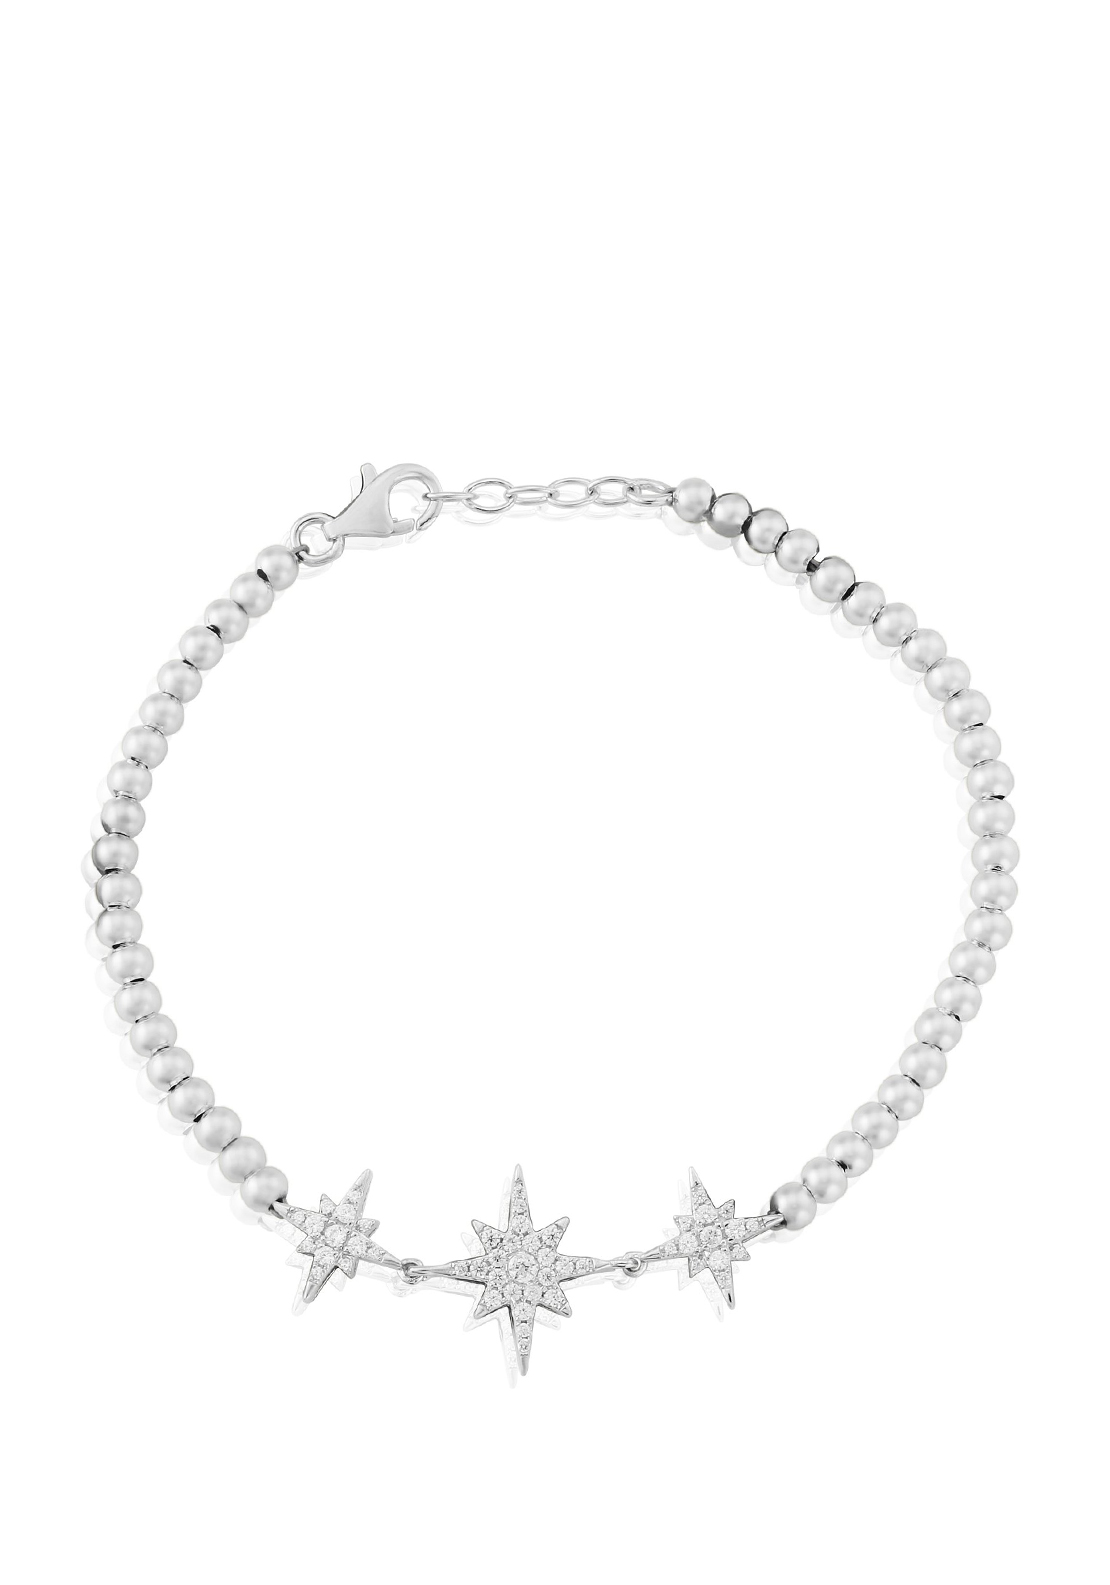 Waterford Crystal Pave Studded Beaded Toggle Bracelet, Silver